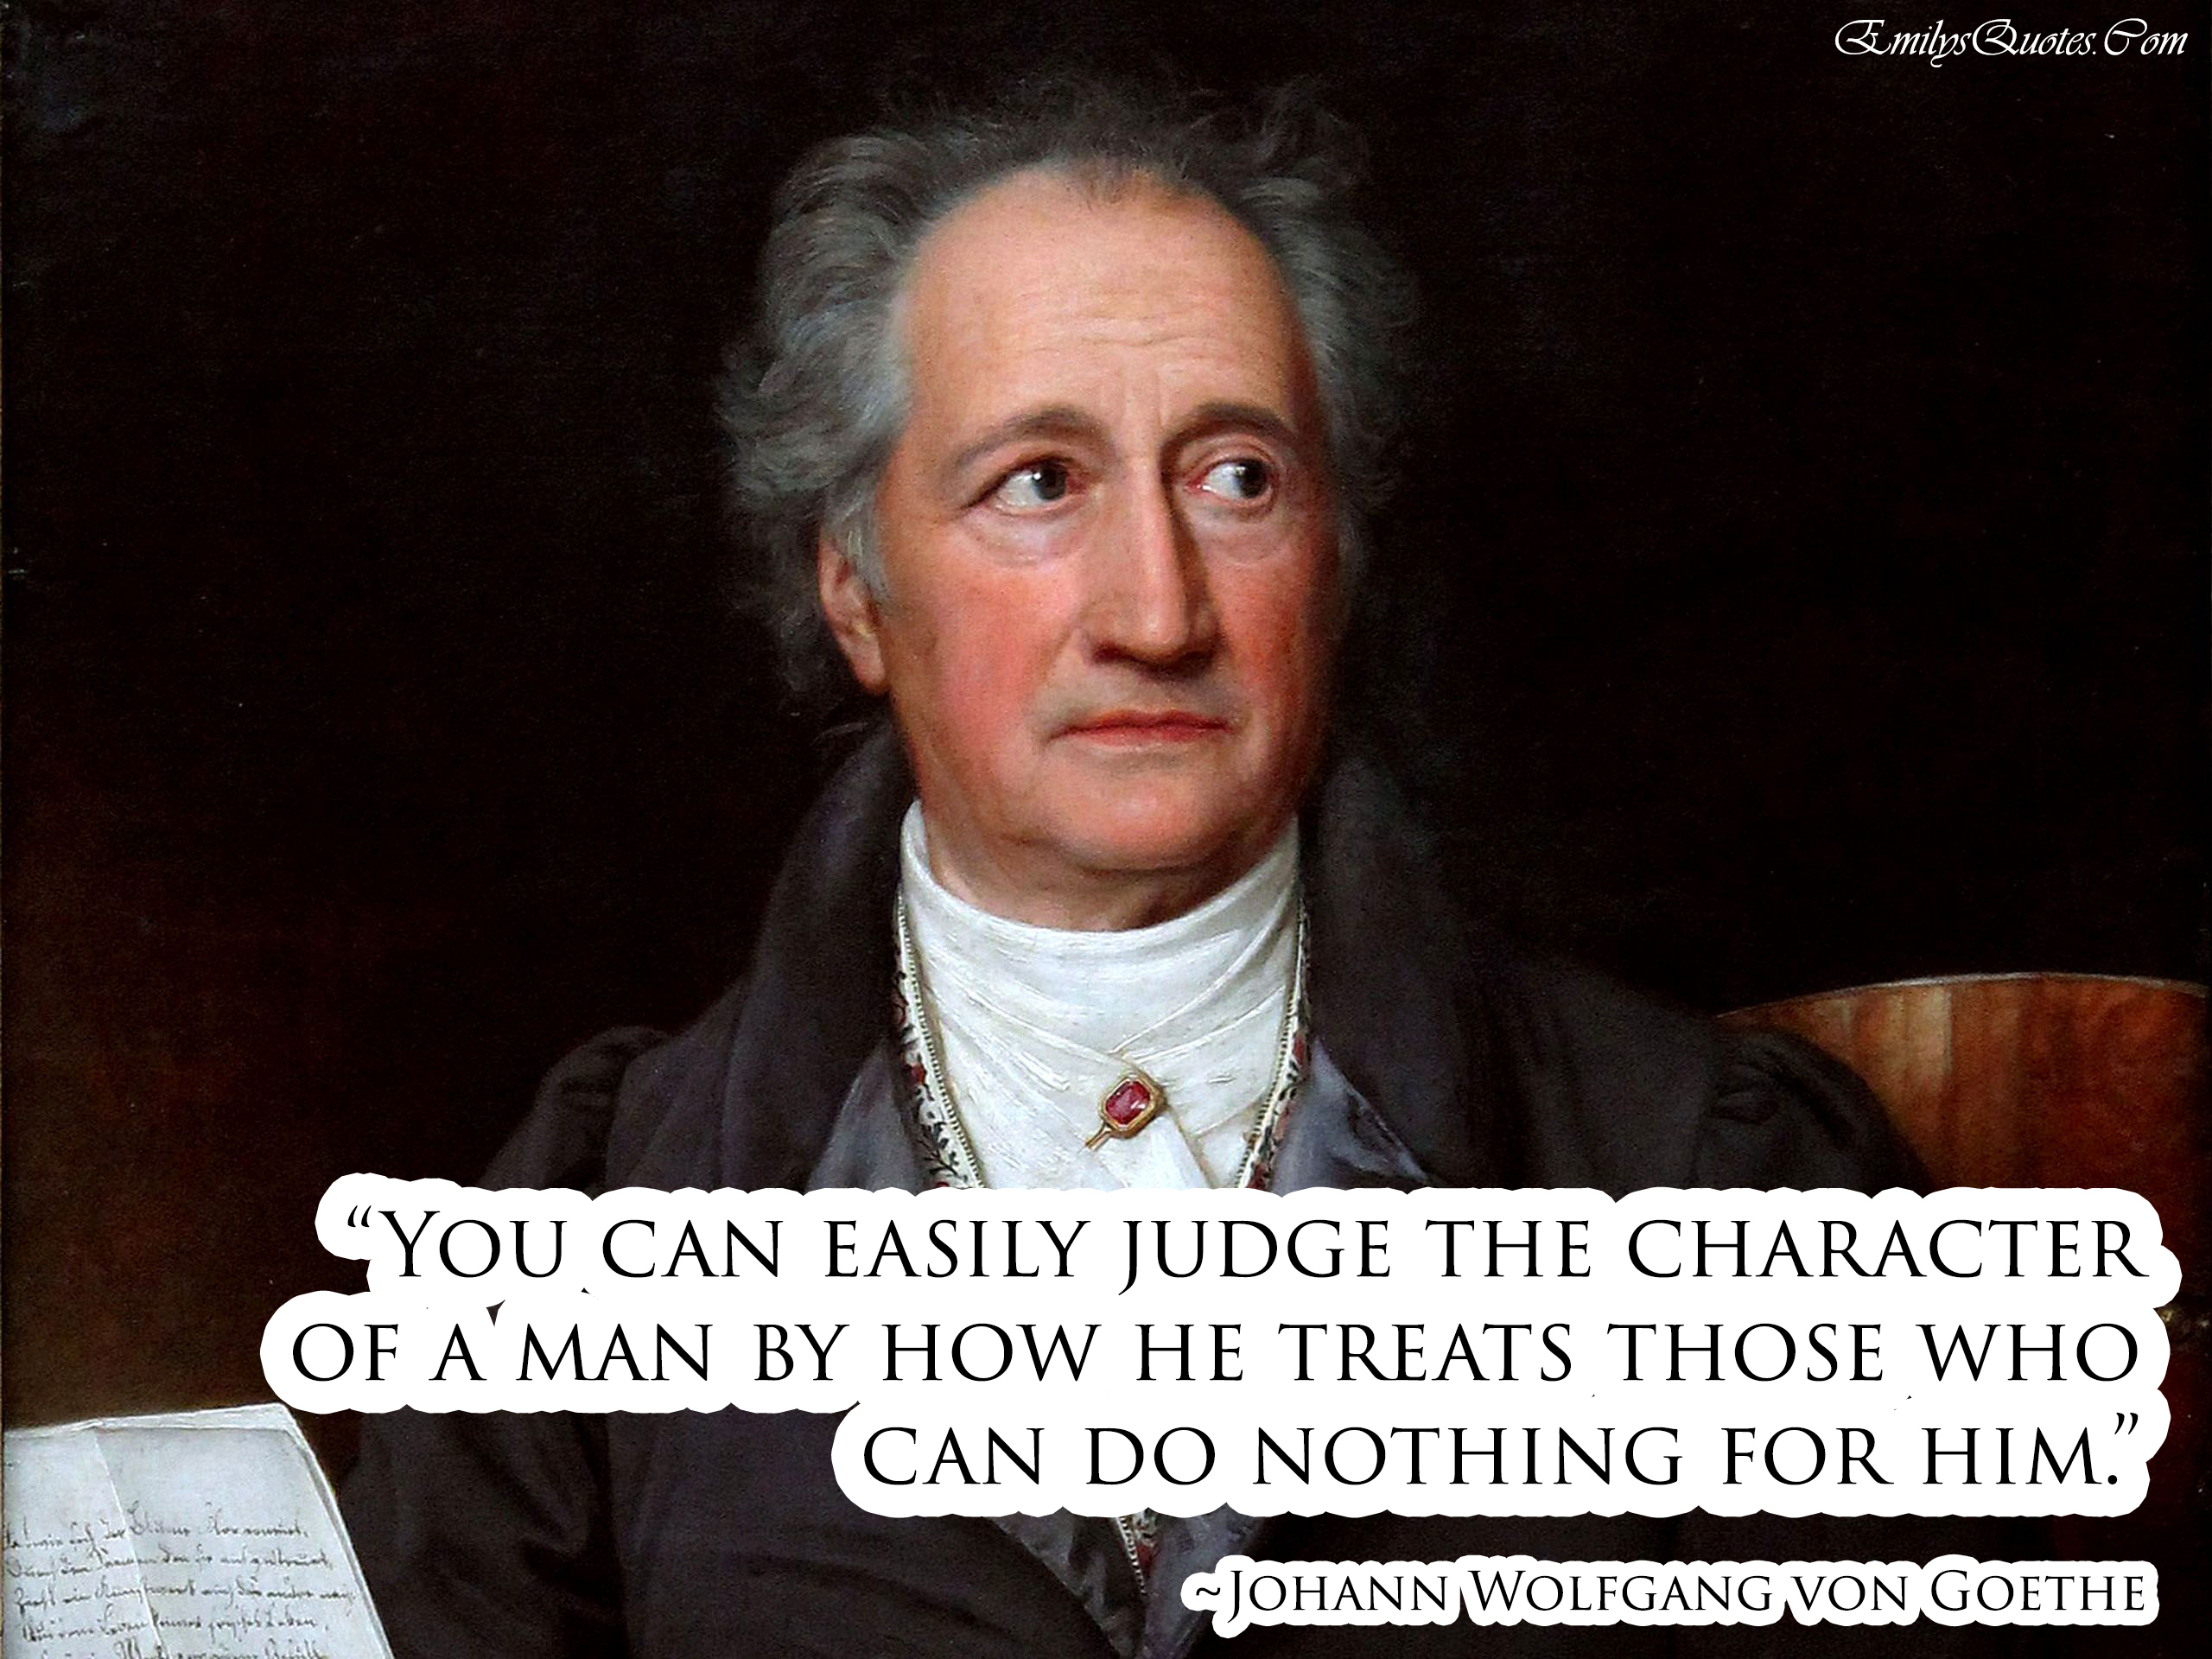 EmilysQuotes.Com - character, be good person, Johann Wolfgang von Goethe, intelligence